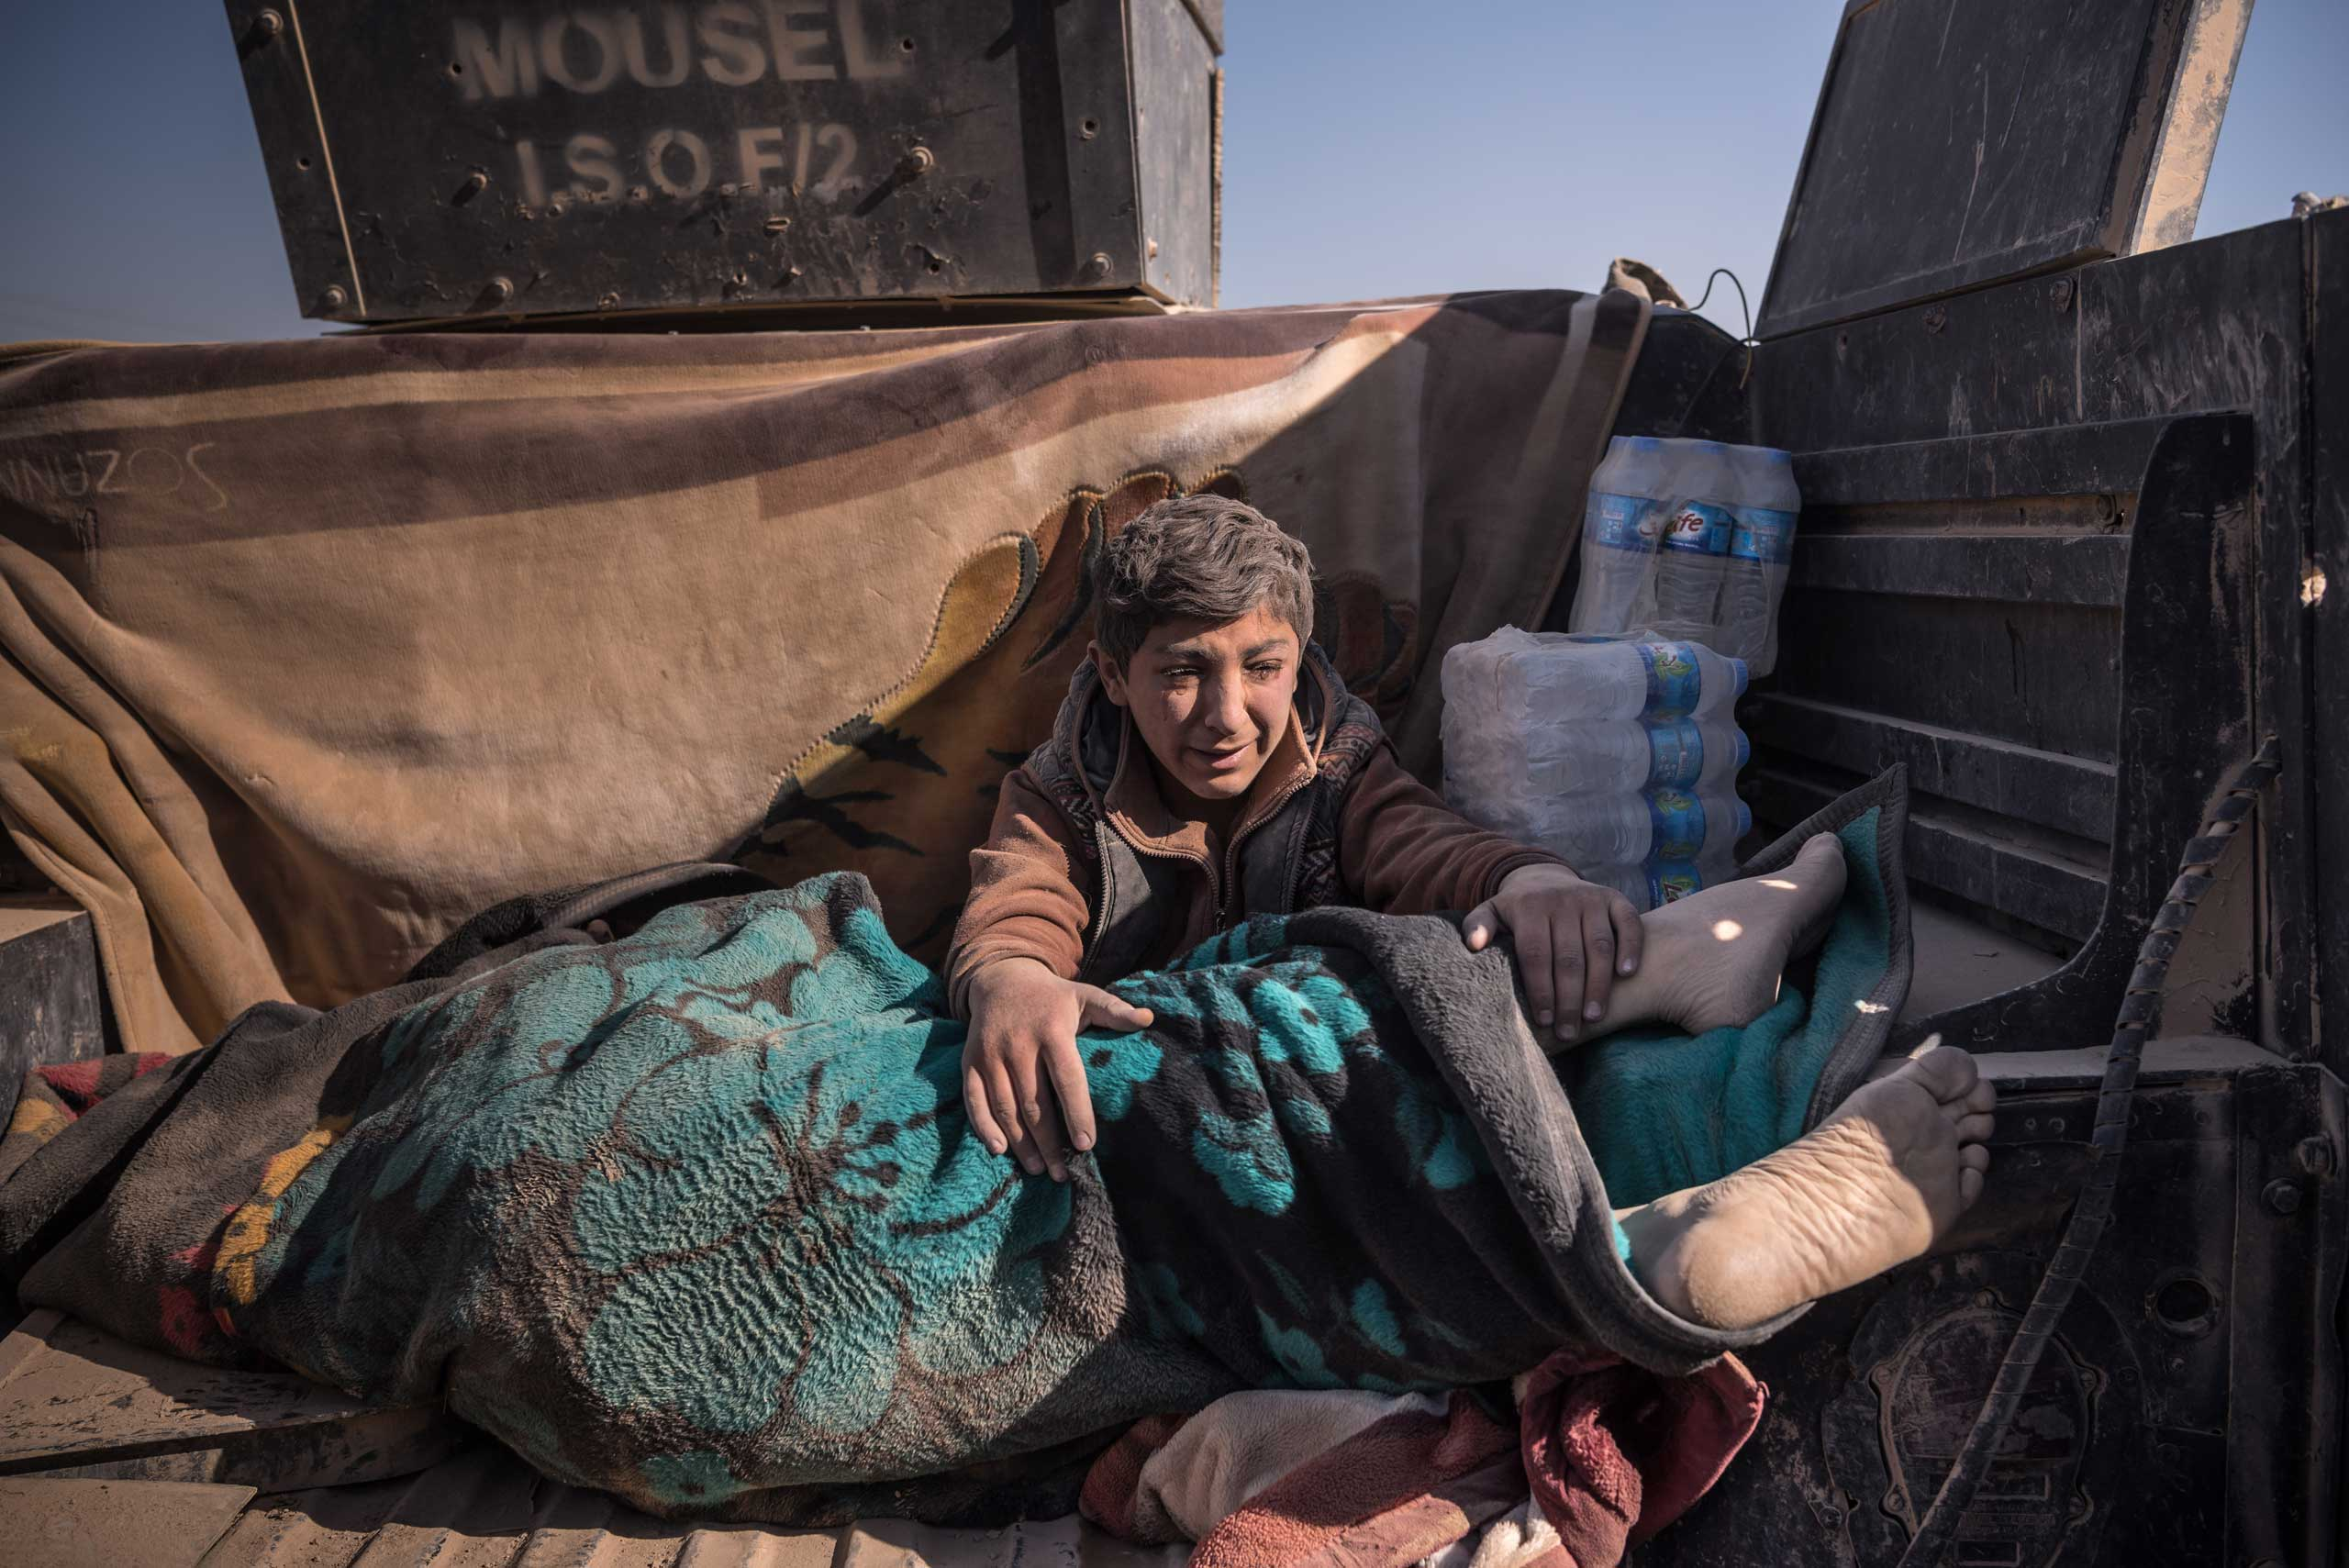 A boy holds the body of his father, killed by the Islamic State, as he arrived at a field hospital on the outskirts of Mosul, Iraq on Nov. 23, 2016.